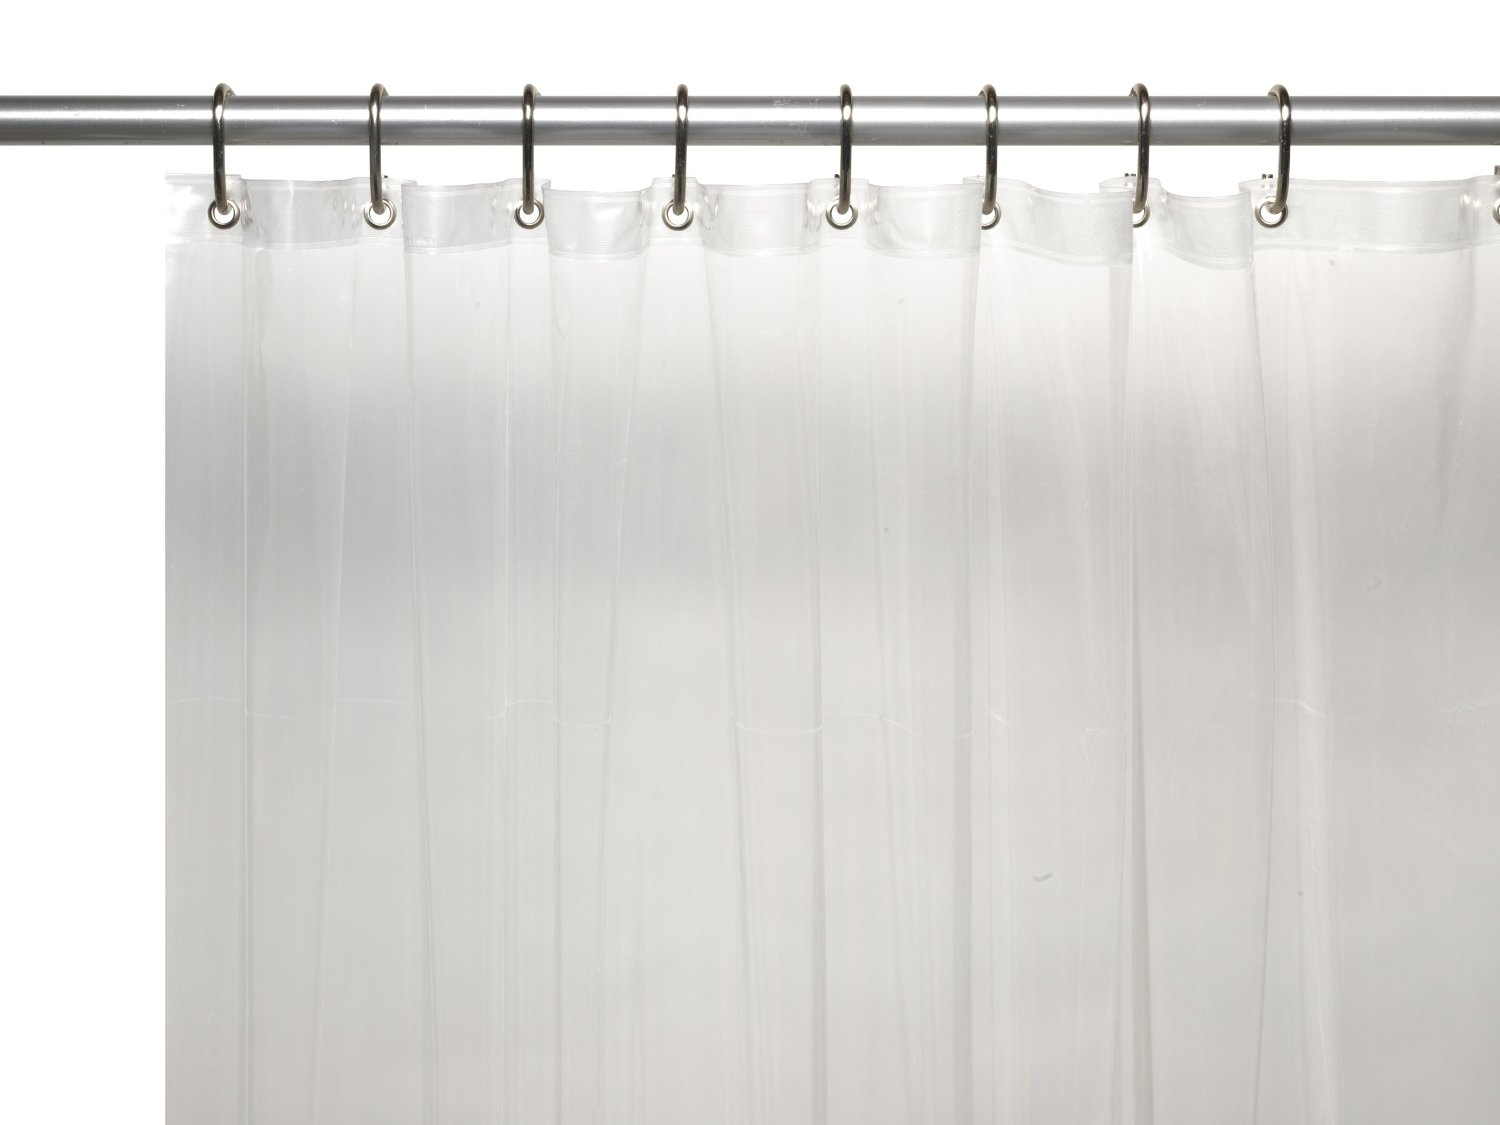 Black 3 Gauge Vinyl Shower Curtain Liner with Weighted Magnets and ...